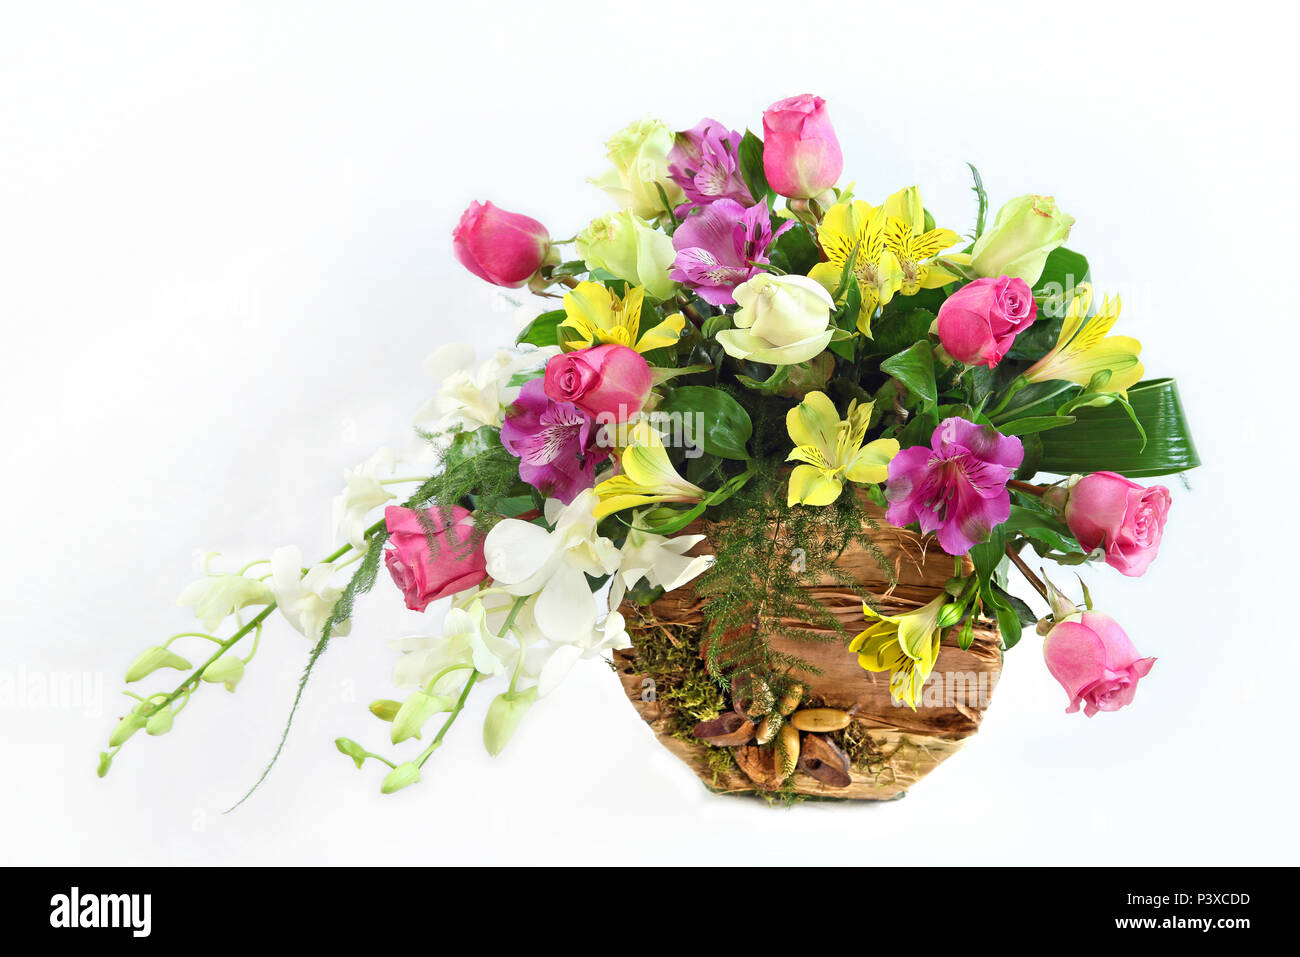 Floral Arrangement In Natural Vase Isolated On A White Background